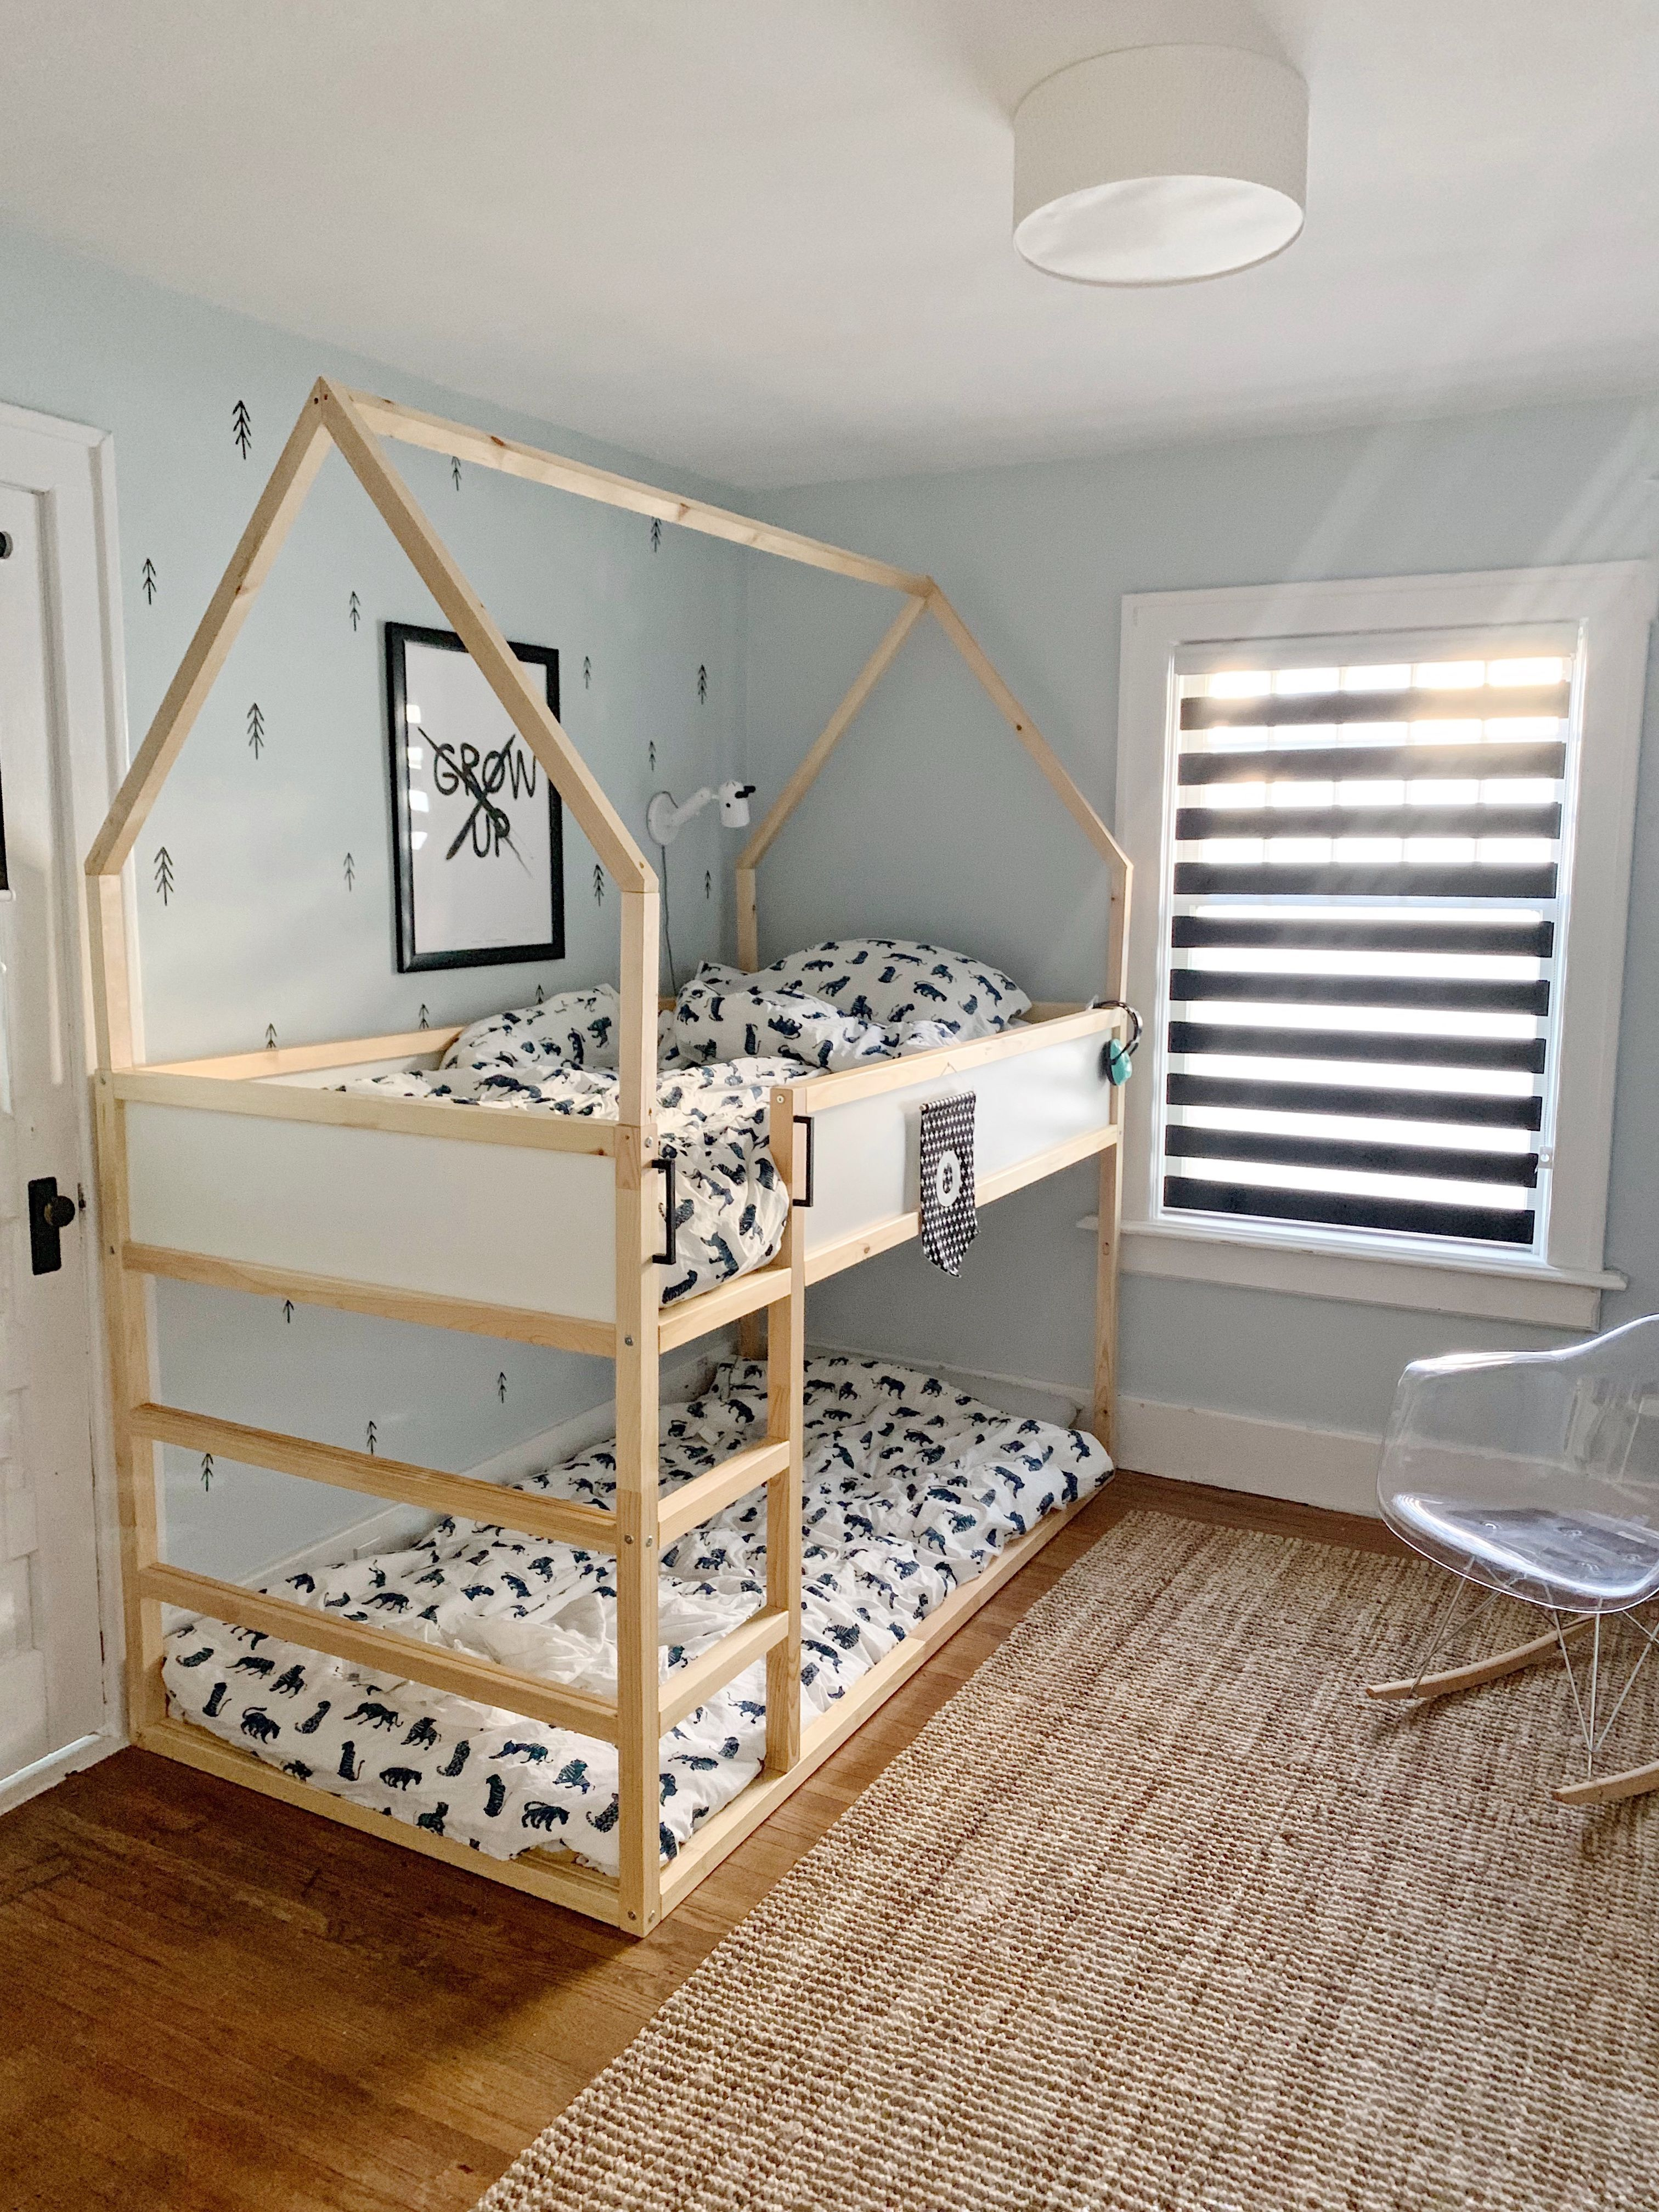 Photo of Great Pictures Ikea Kura Bed House Hack Popular Inexpensive, Toddler-friendly …